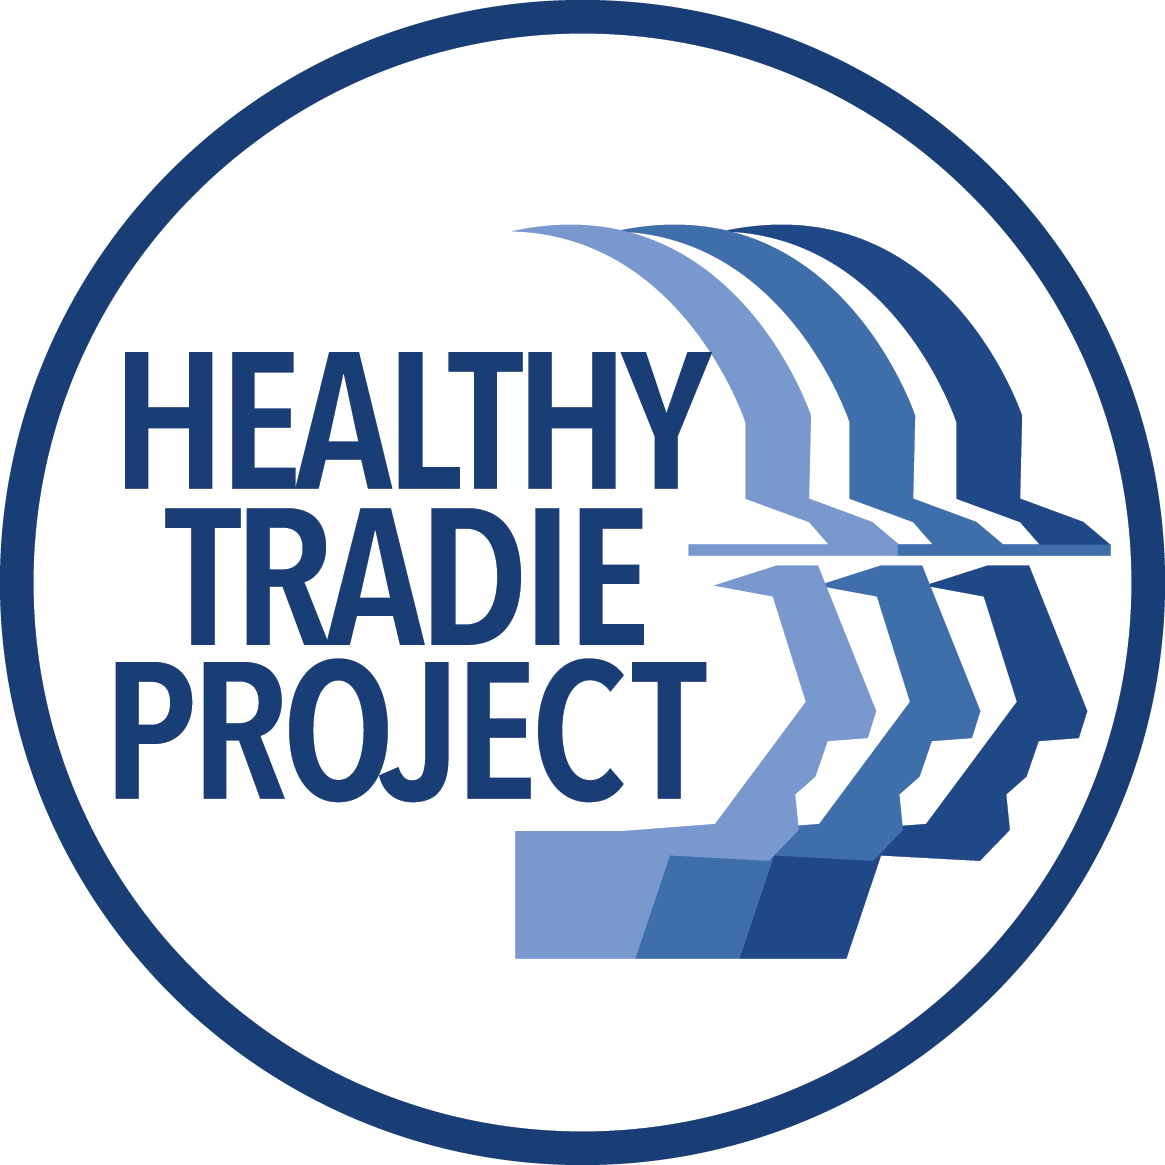 Healthy Tradie Project